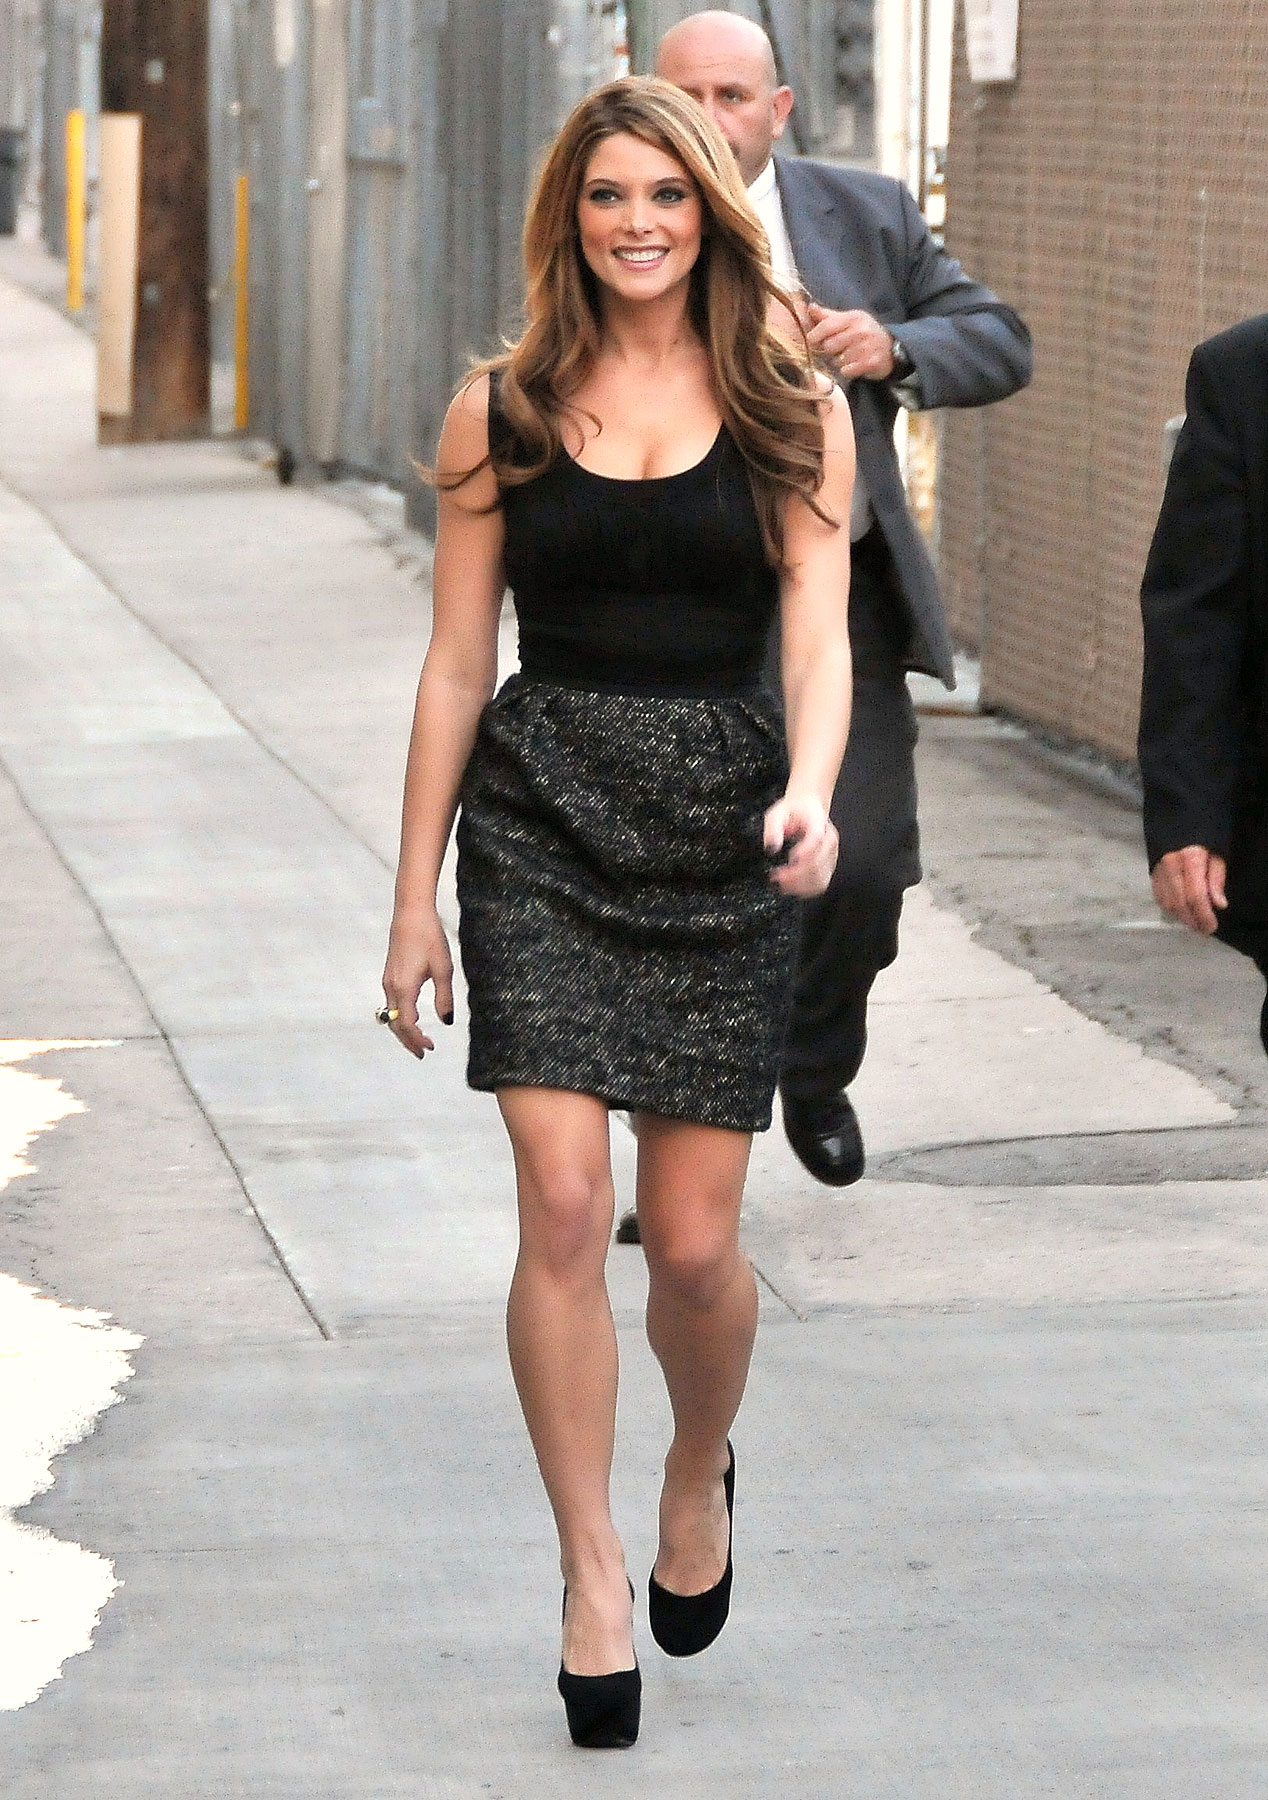 Ashley Greene Visits Jimmy Kimmel Live! (PHOTOS)